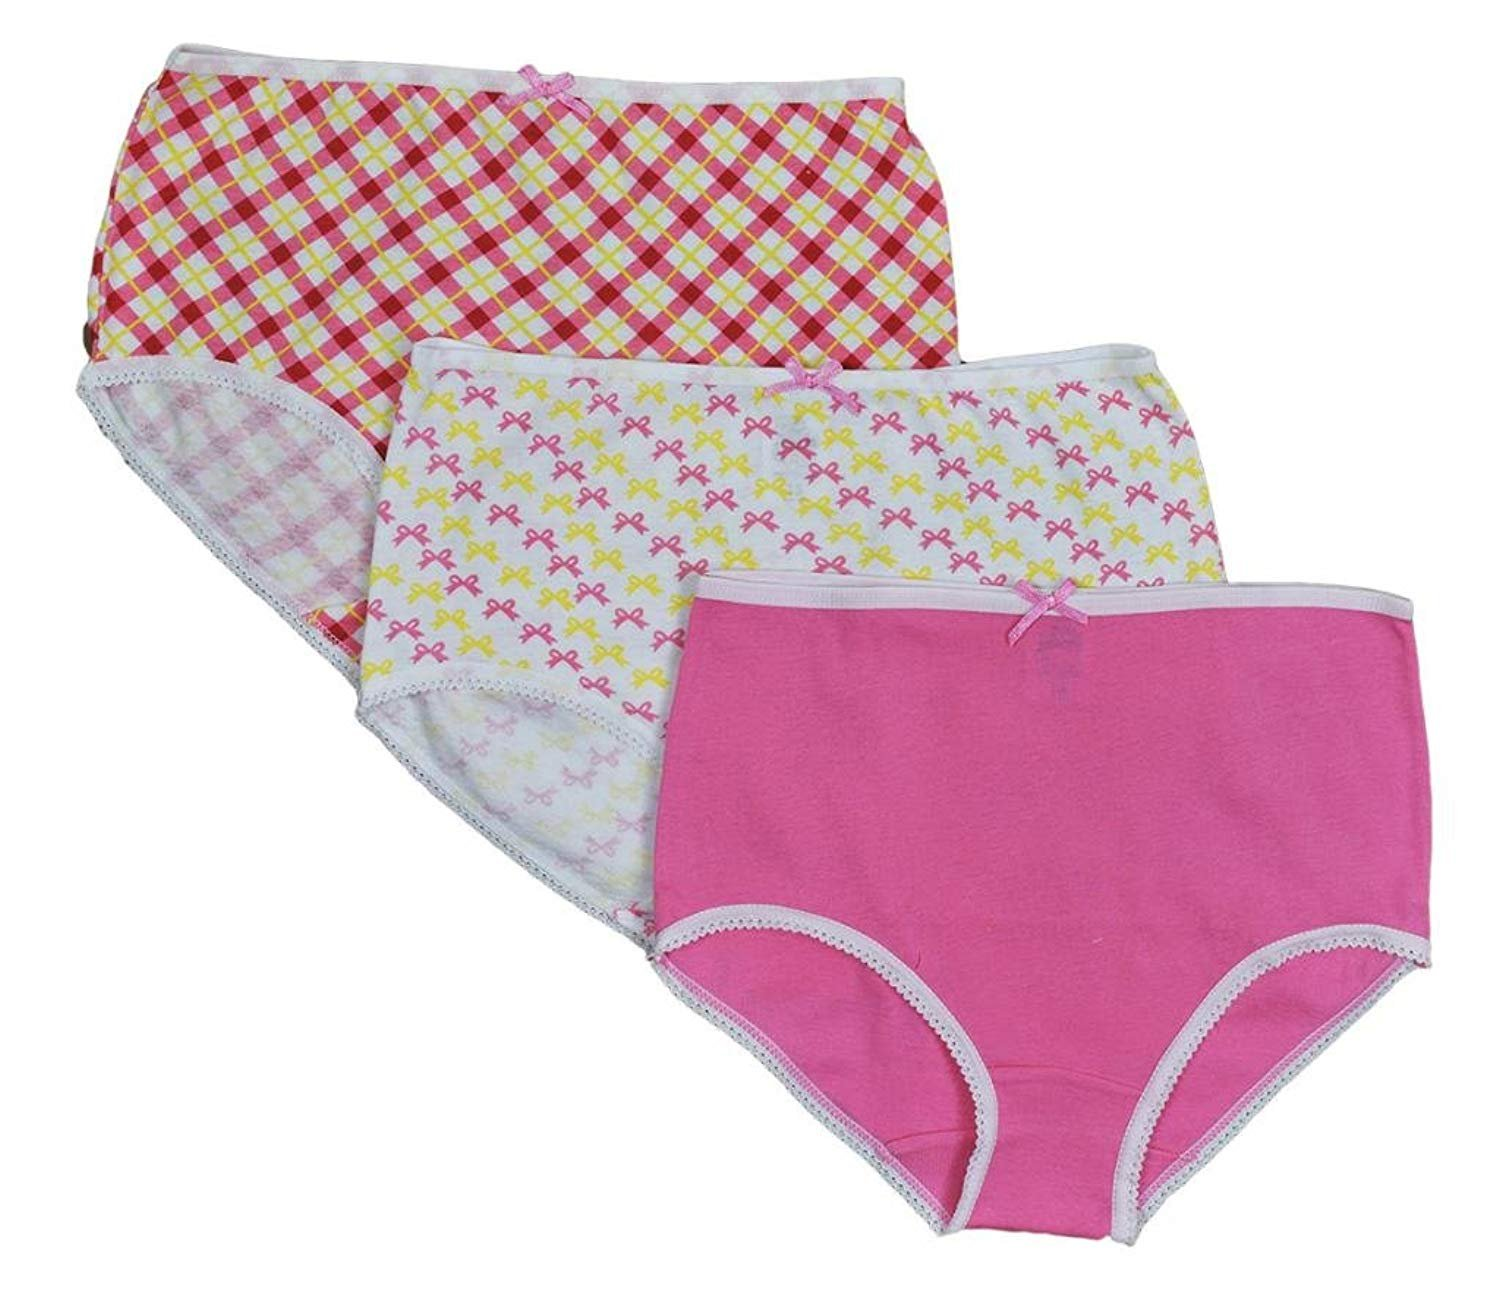 Jack 'n Jill Girls 100% Combed Cotton Briefs In Assorted Prints (3 Pack) 906